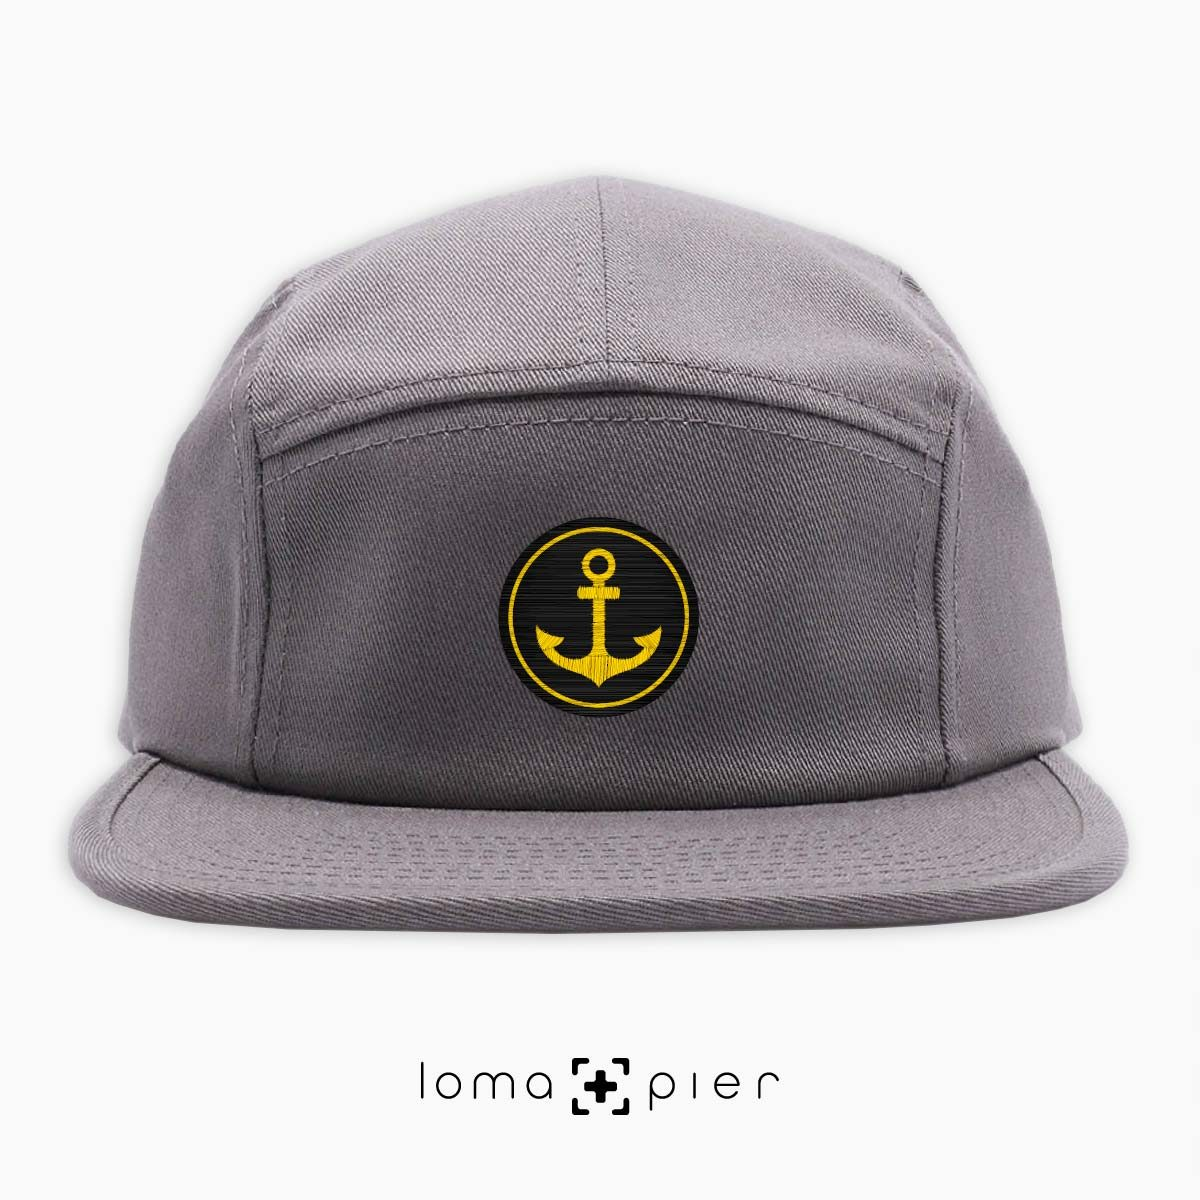 ANCHOR icon 5-panel hat in grey by loma+pier hat store